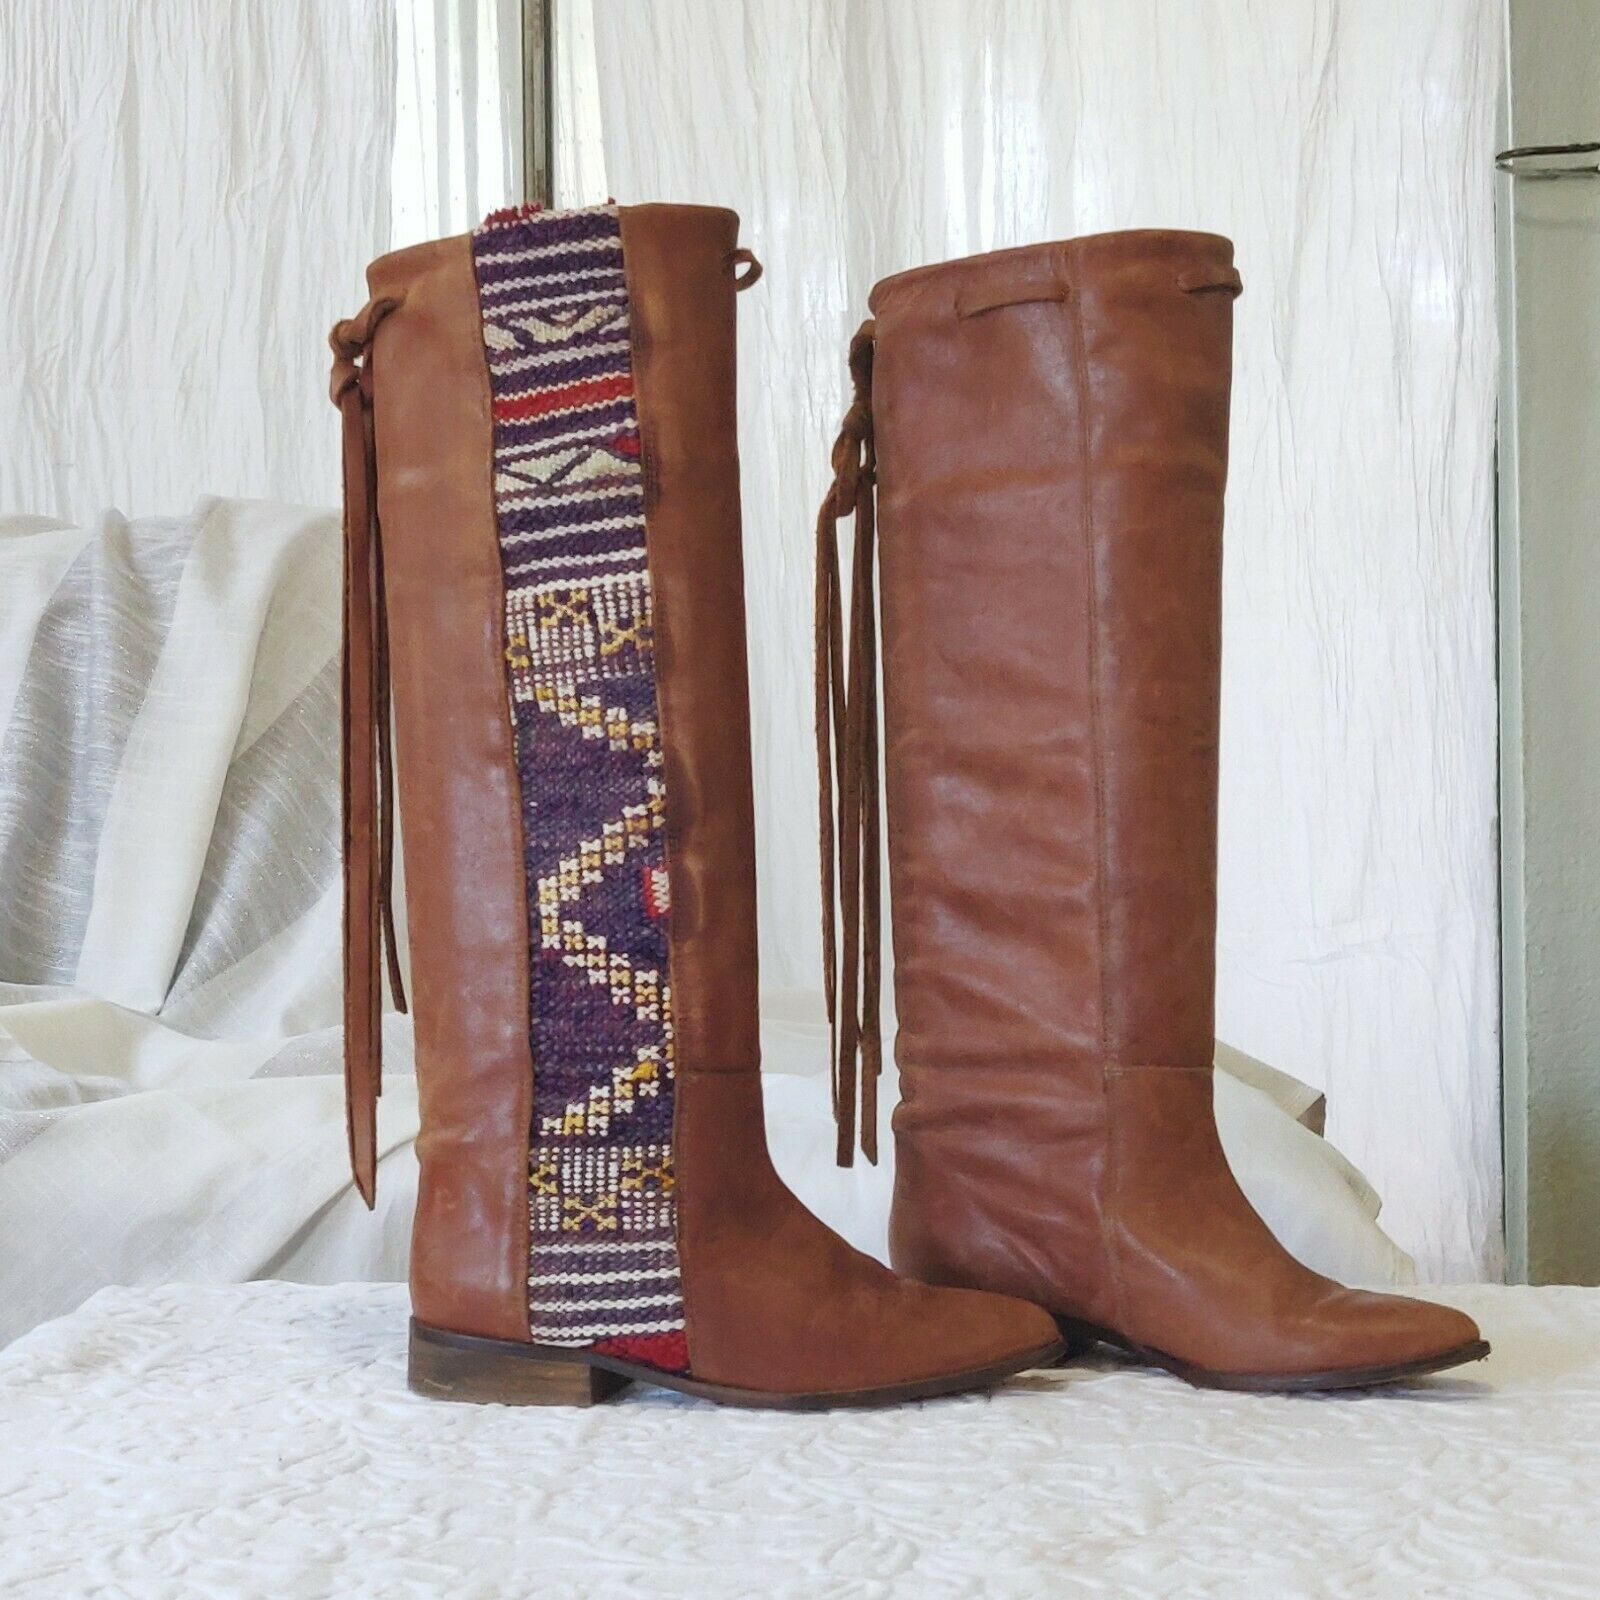 e8766c0de7f Howsty Aisha Boots from Anthropologie Anthropologie Anthropologie ...